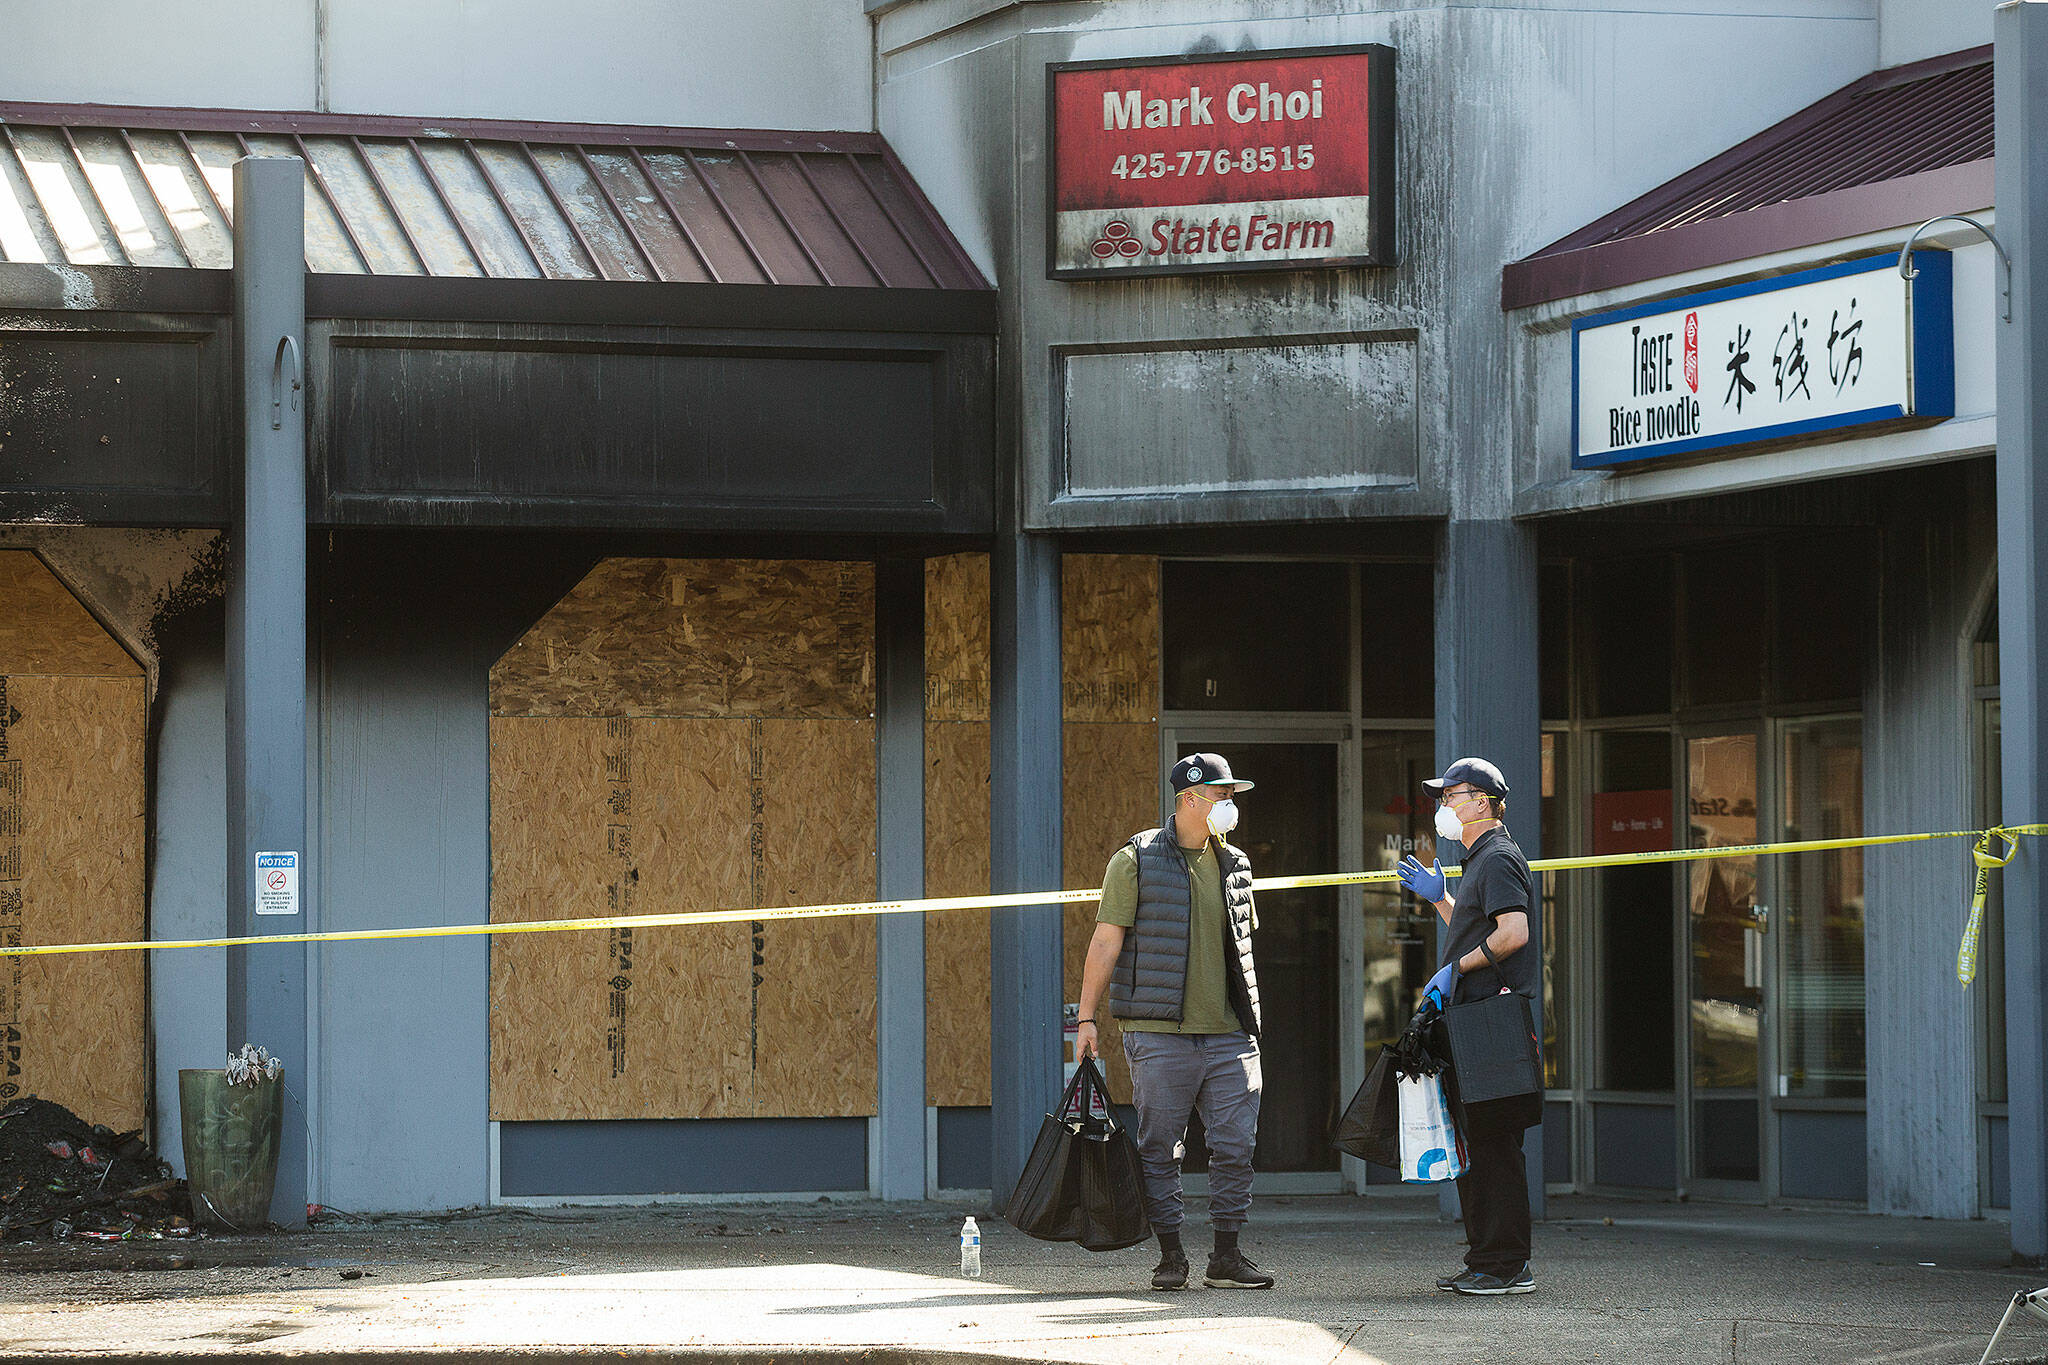 Mark Choi (right) and an employee leave his office in the Plum Tree Plaza after firefighters checked for hot spots on Monday in Edmonds. (Andy Bronson / The Herald)